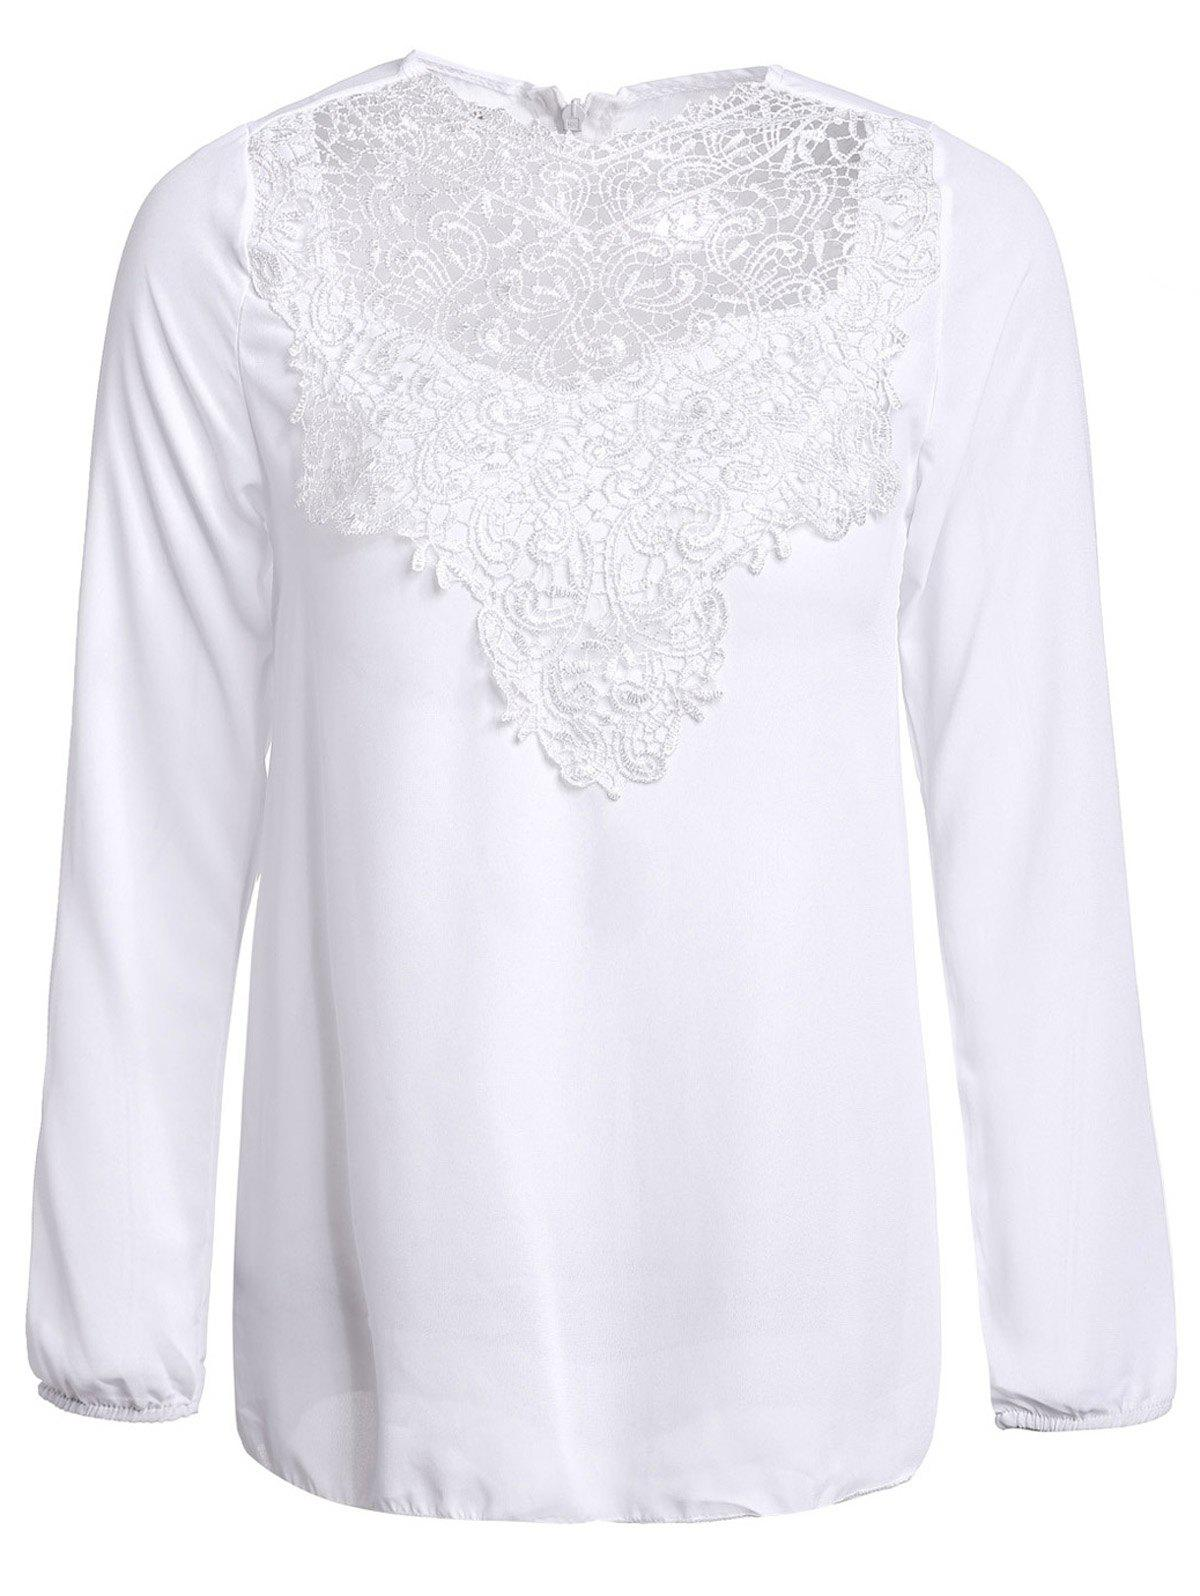 Simple Round Collar Solid Color See-Through Women's Long Sleeve Blouse - WHITE M